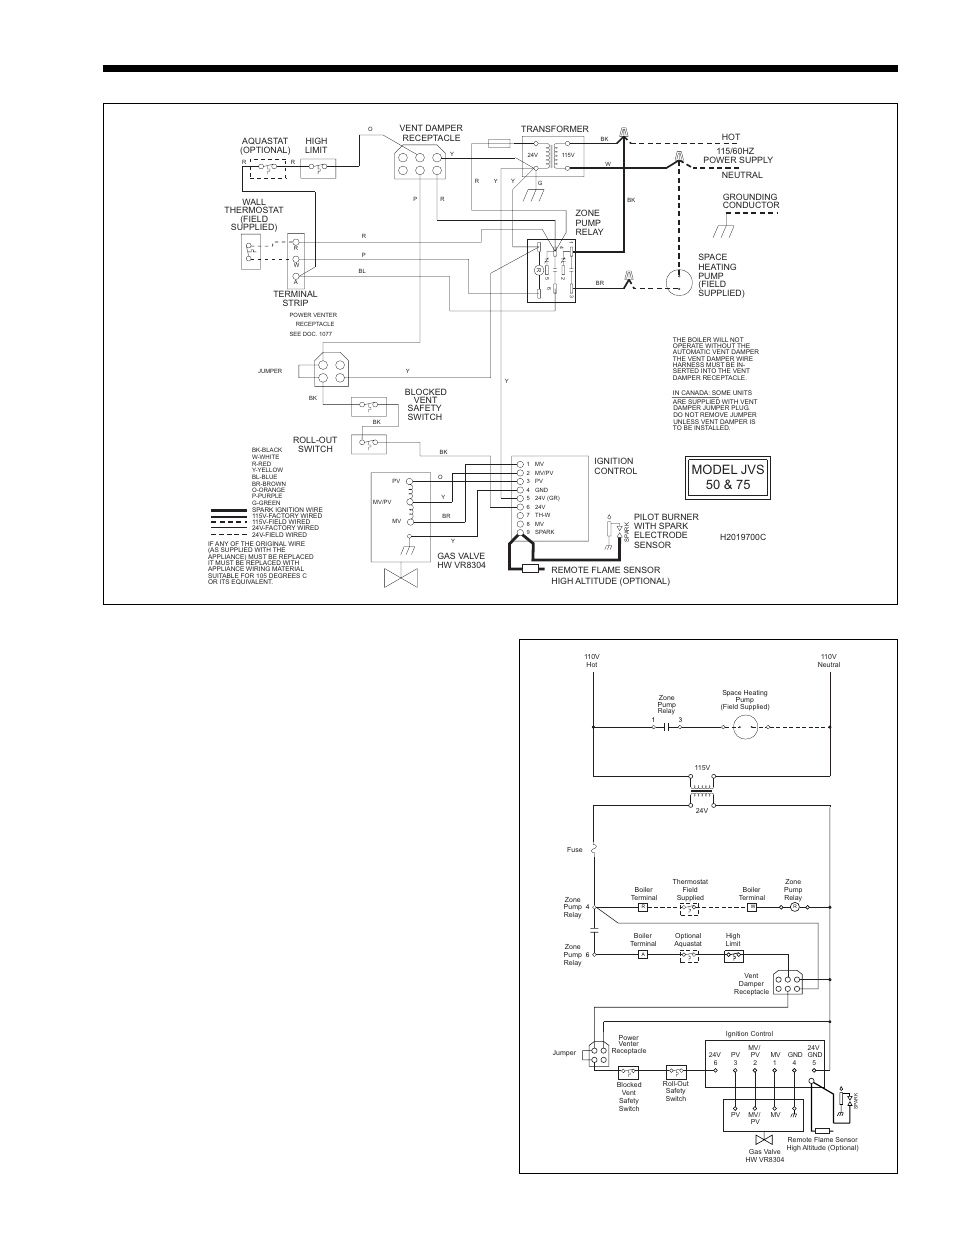 Honeywell L4064b Wiring Diagram 31 Images Fan And Limit Control With 5 In Insert L4064b2228 The Combination Furnace Laars Mini Therm Ii Jvt Sizes 50 225 Install Operating Manual Page17resize